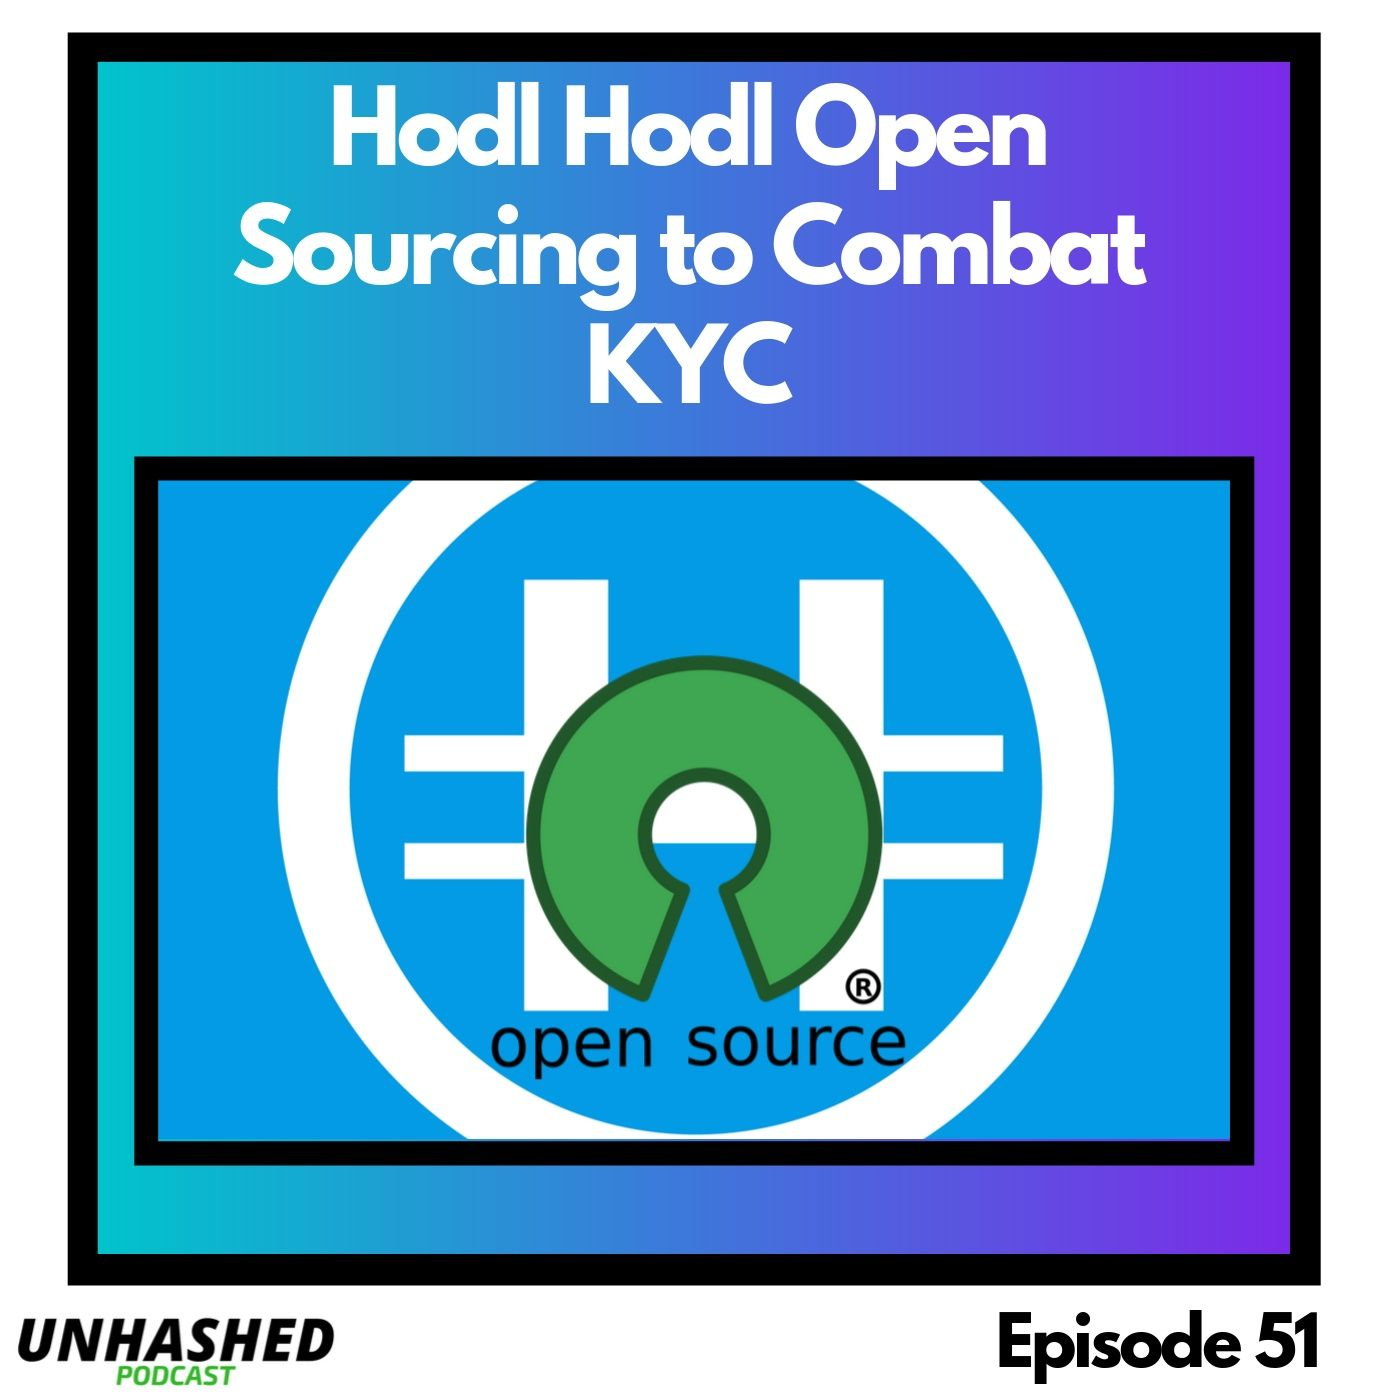 Hodl Hodl Open Sourcing to Combat KYC